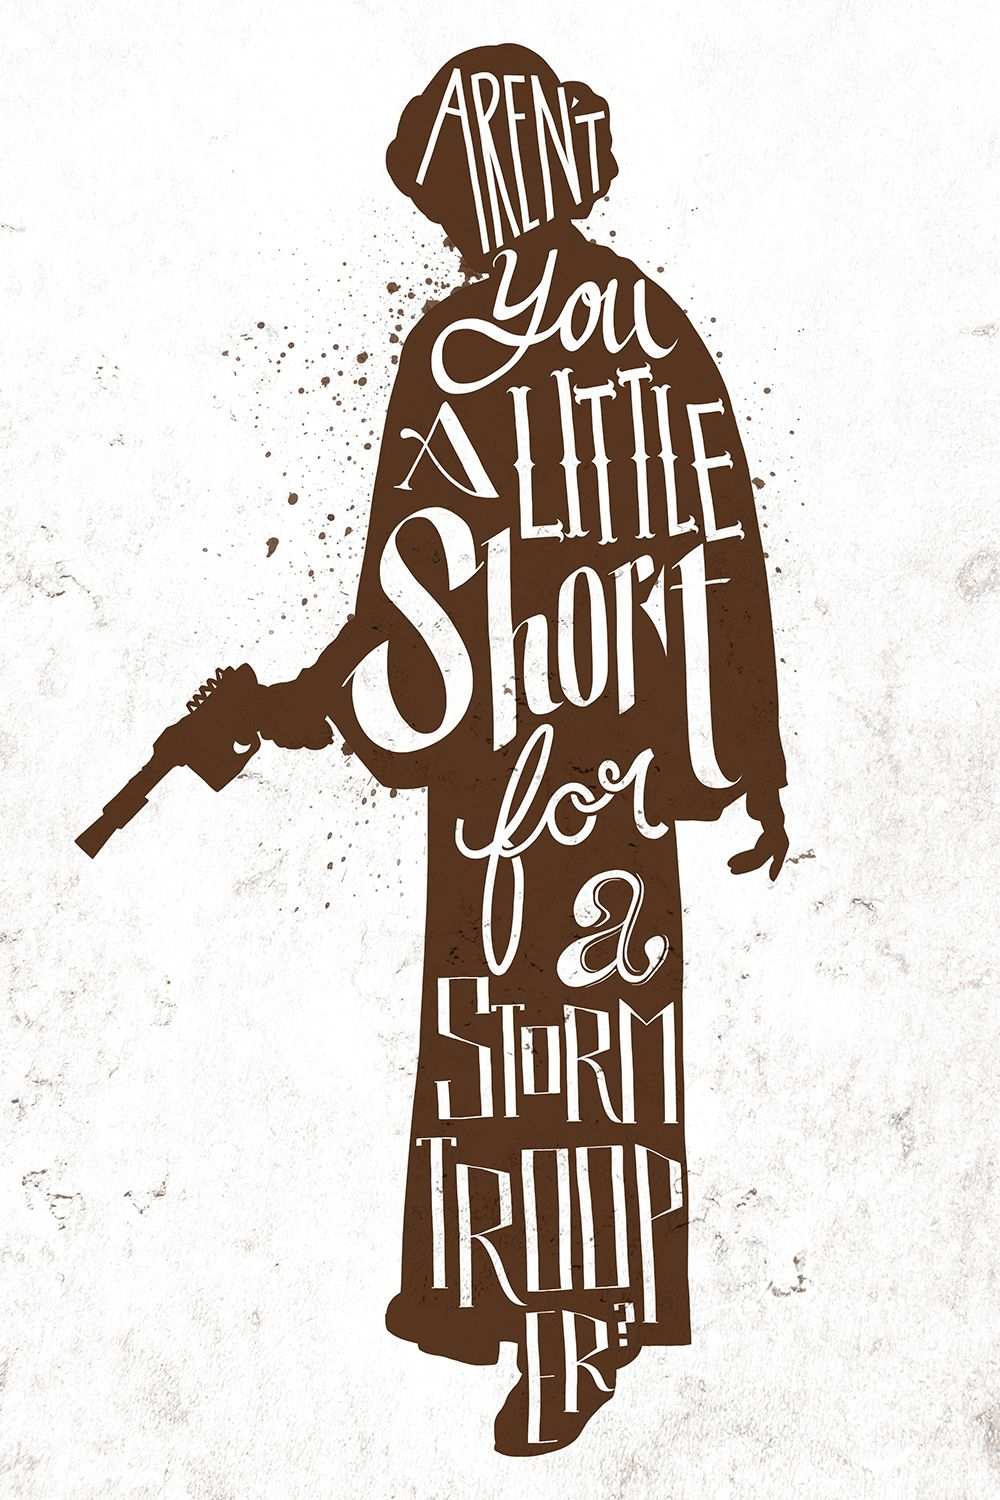 Star Wars Quotes Star Wars Handlettering Quotes  Createdjiaqi He  Star Wars .